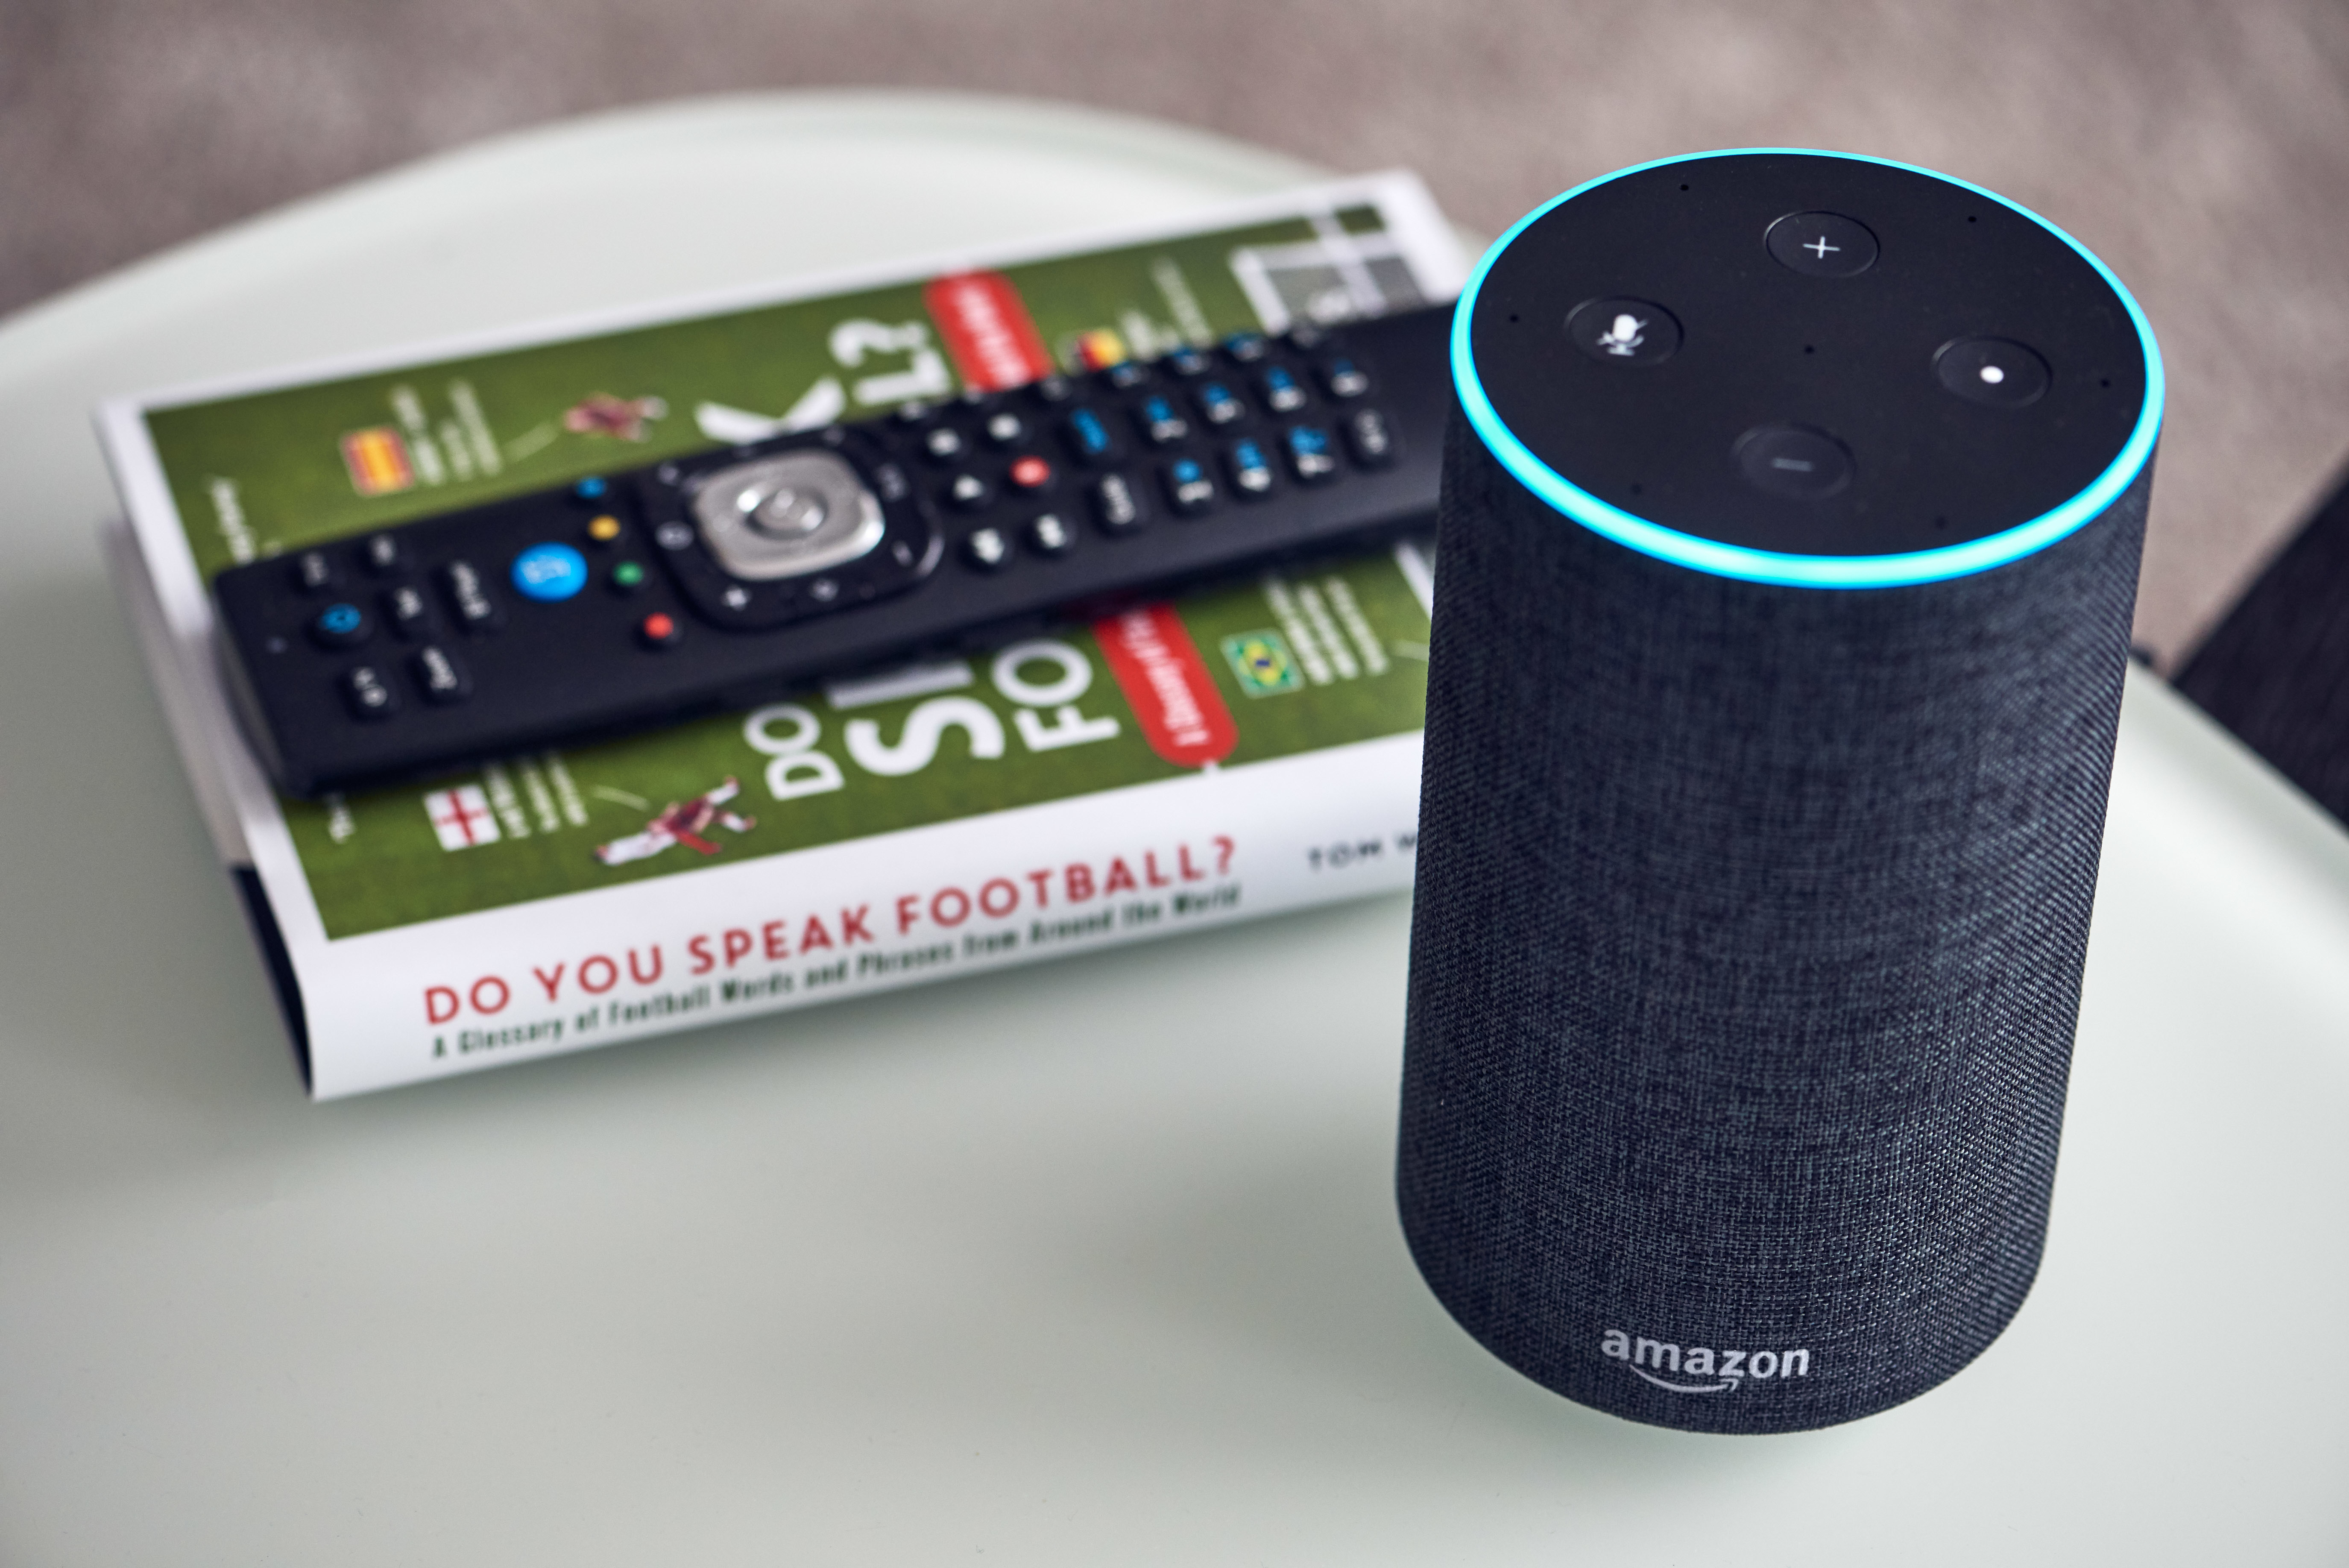 An Amazon Echo next to a book about football